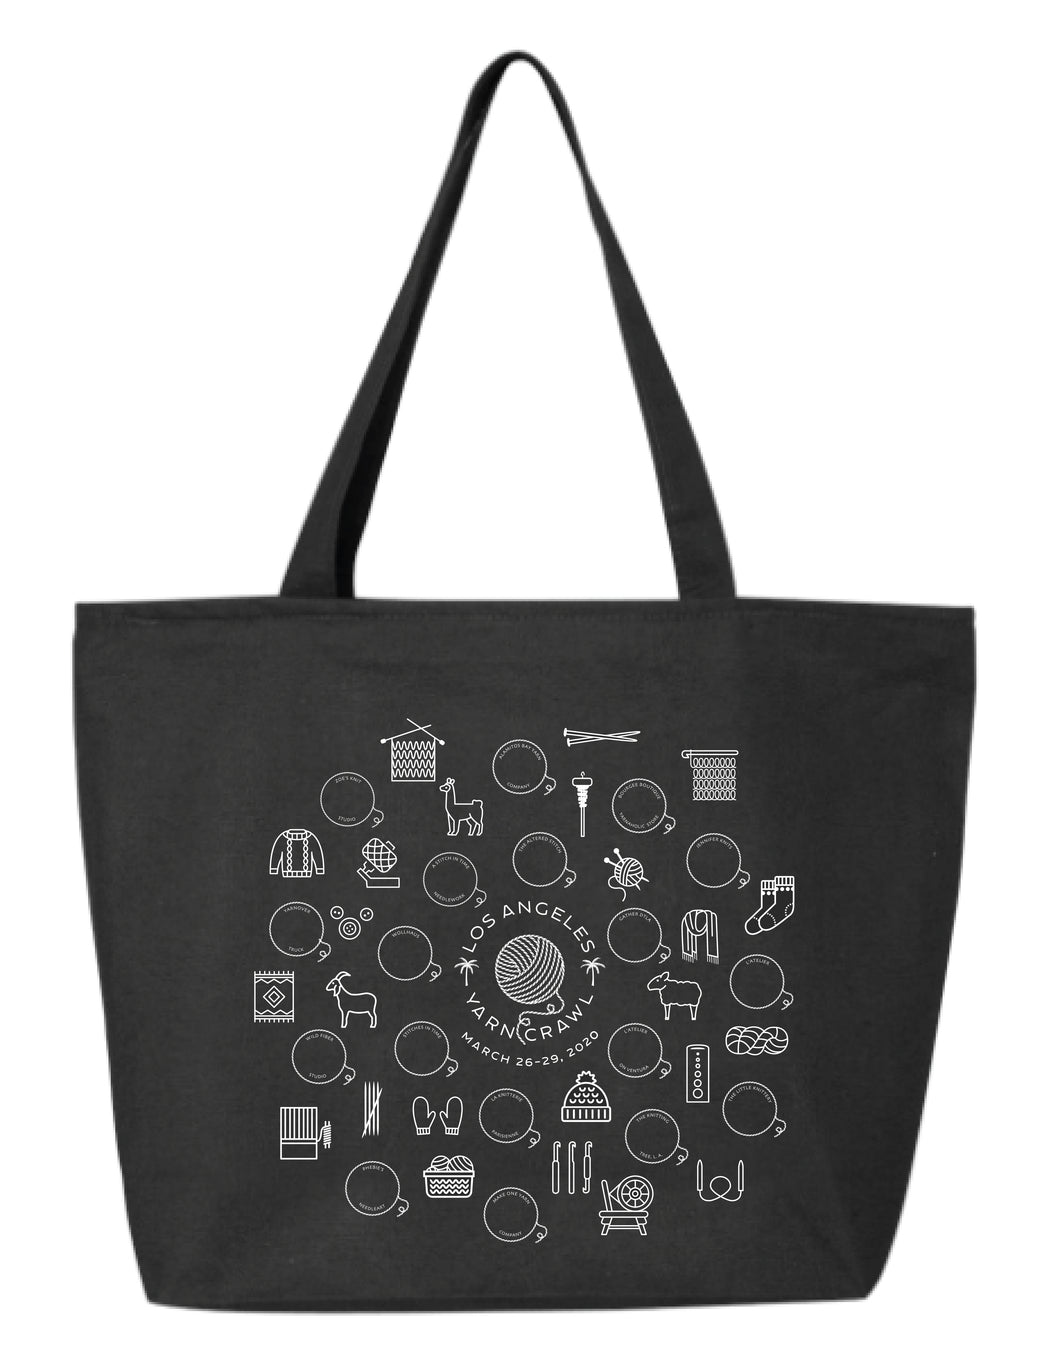 9th Annual LA Yarn Crawl Tote Bag